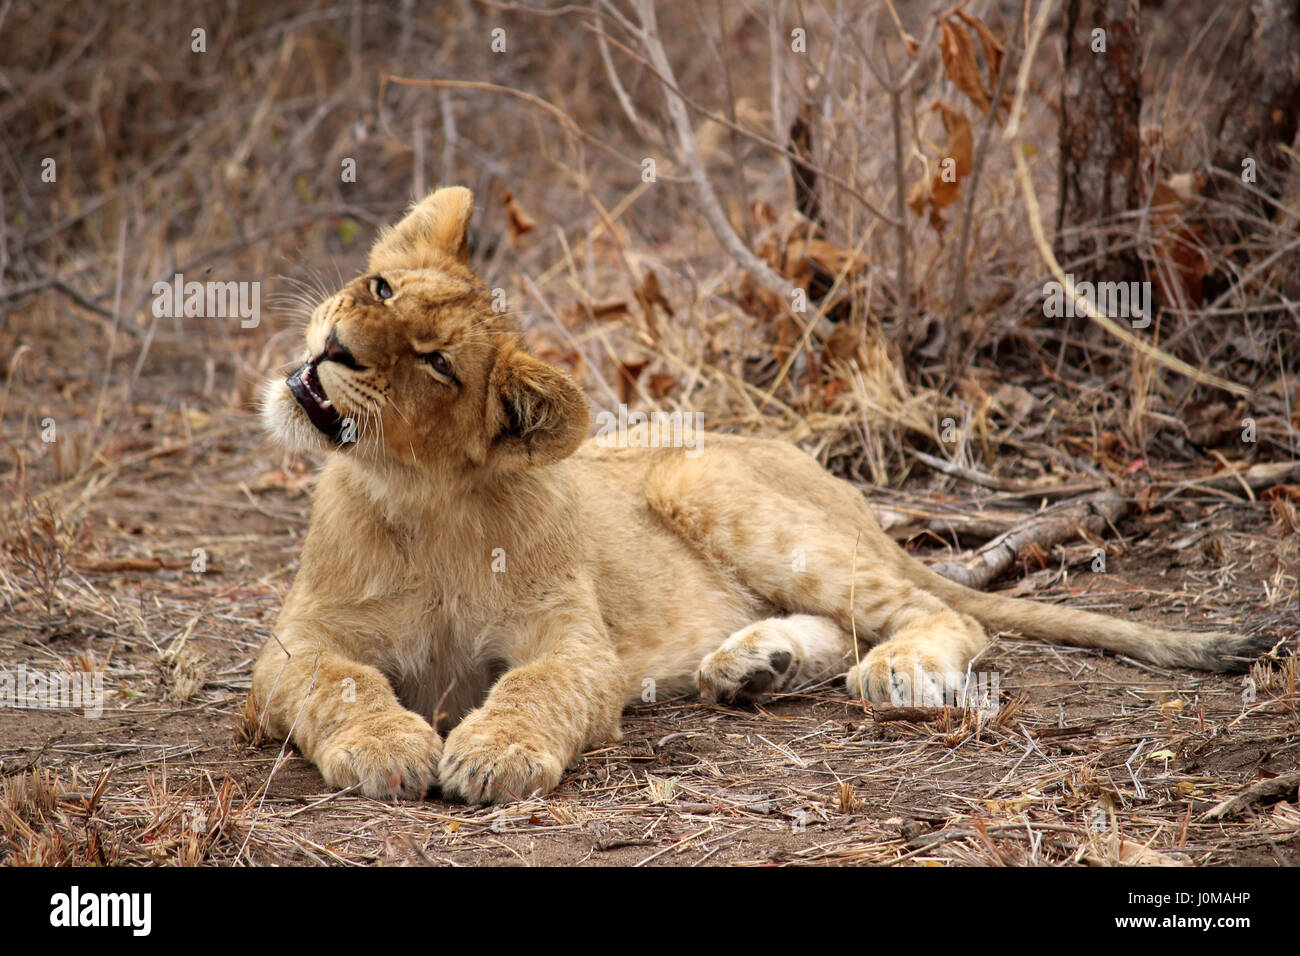 Lion Cub trying to catch a fly with its mouth - Stock Image